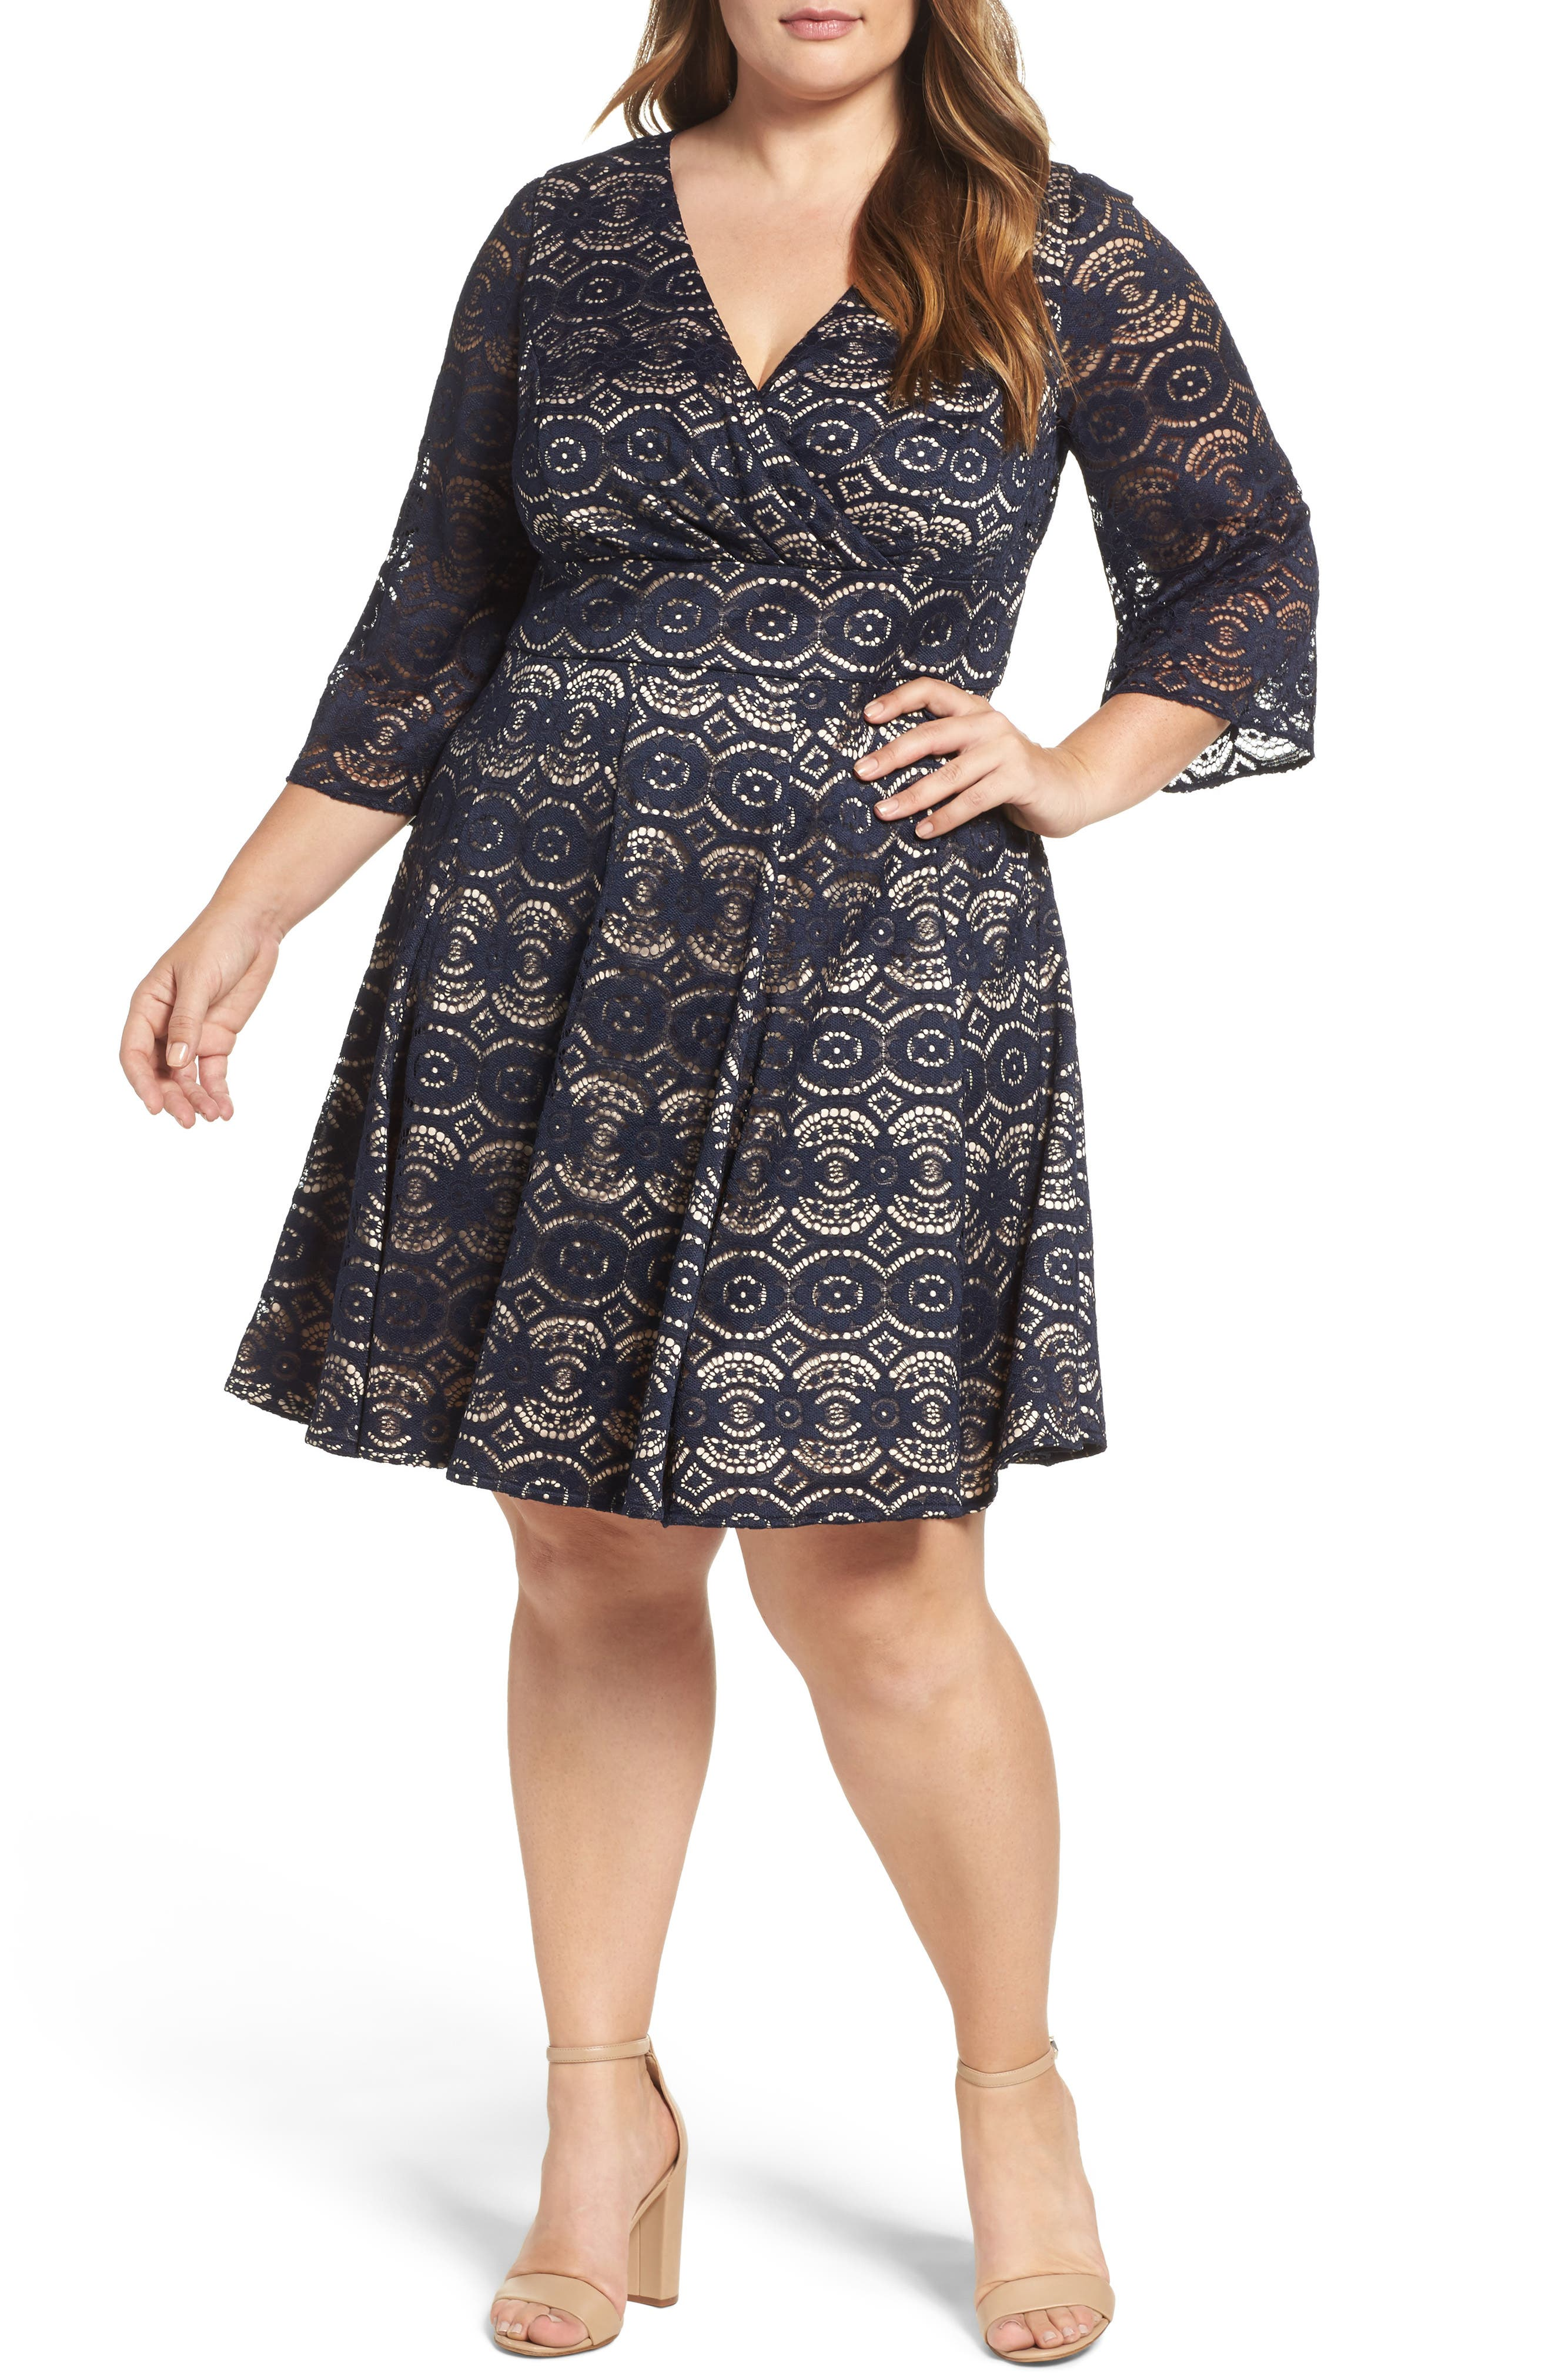 Alternate Image 1 Selected - Eliza J Bell Sleeve Lace Fit & Flare Dress (Plus Size)